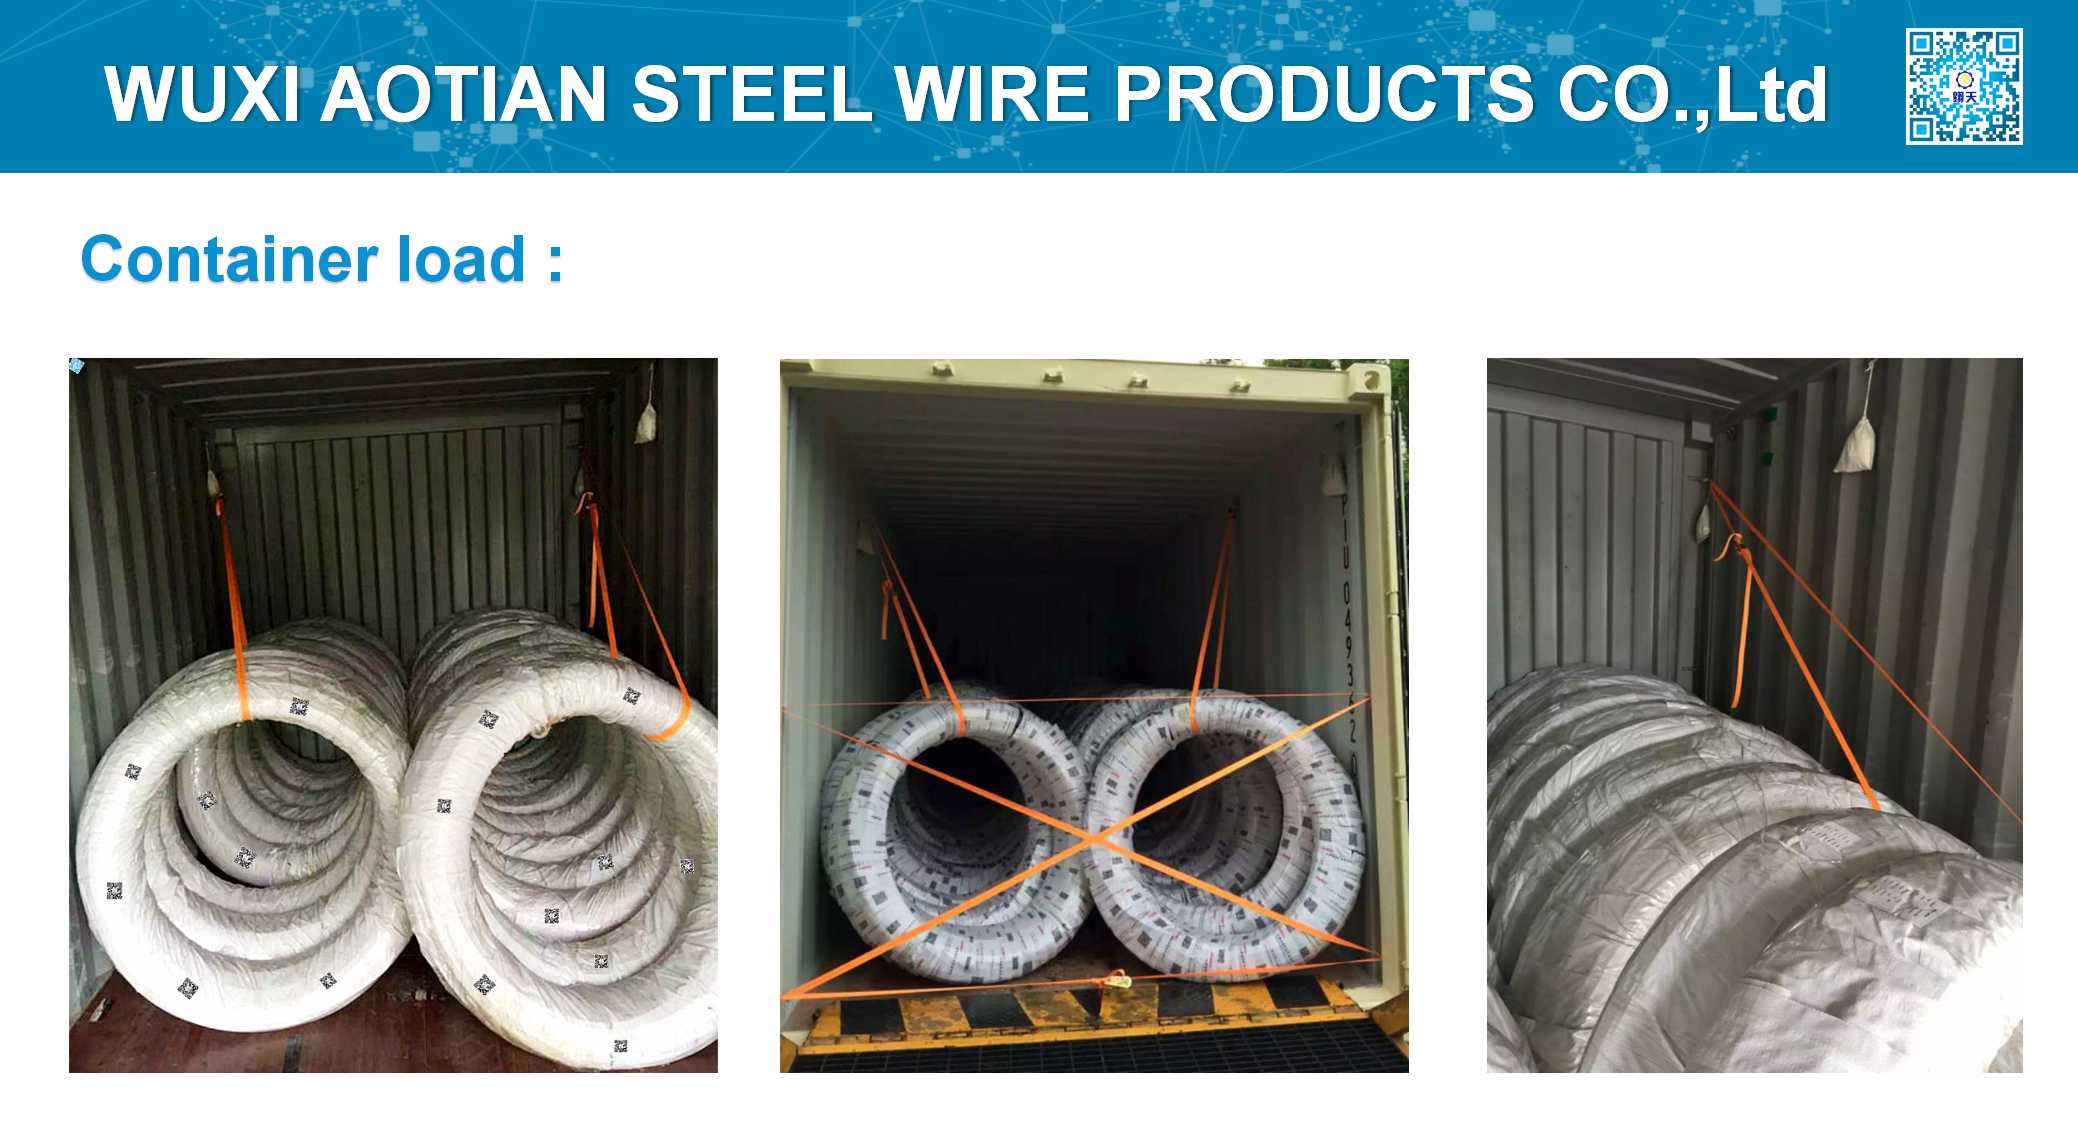 Container load for wire coil